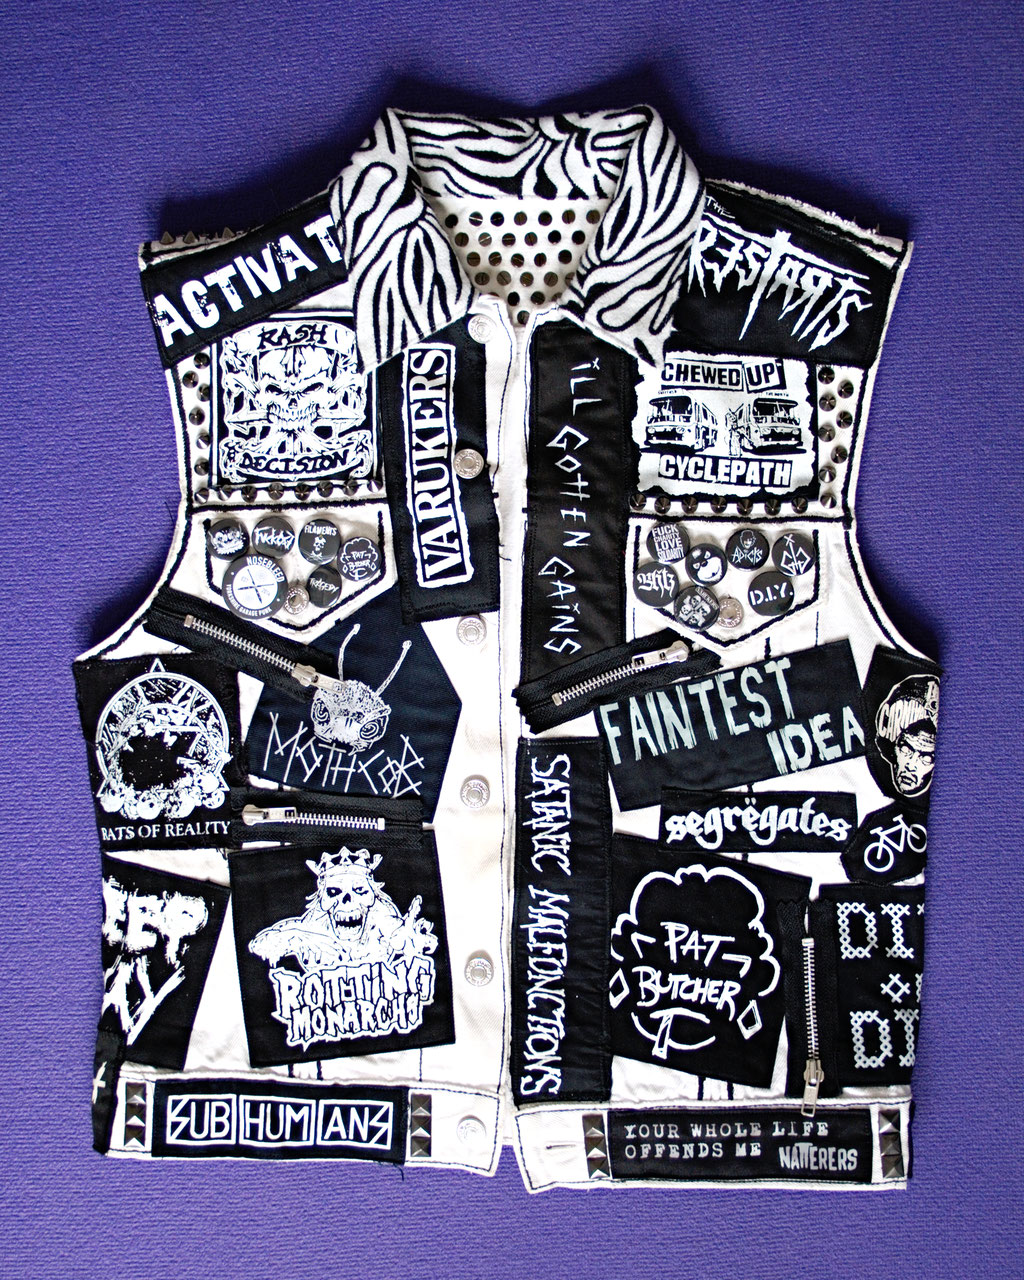 Update on the not-so-white-anymore punk vest - front view after - Zebraspider Eco Anti-Fashion